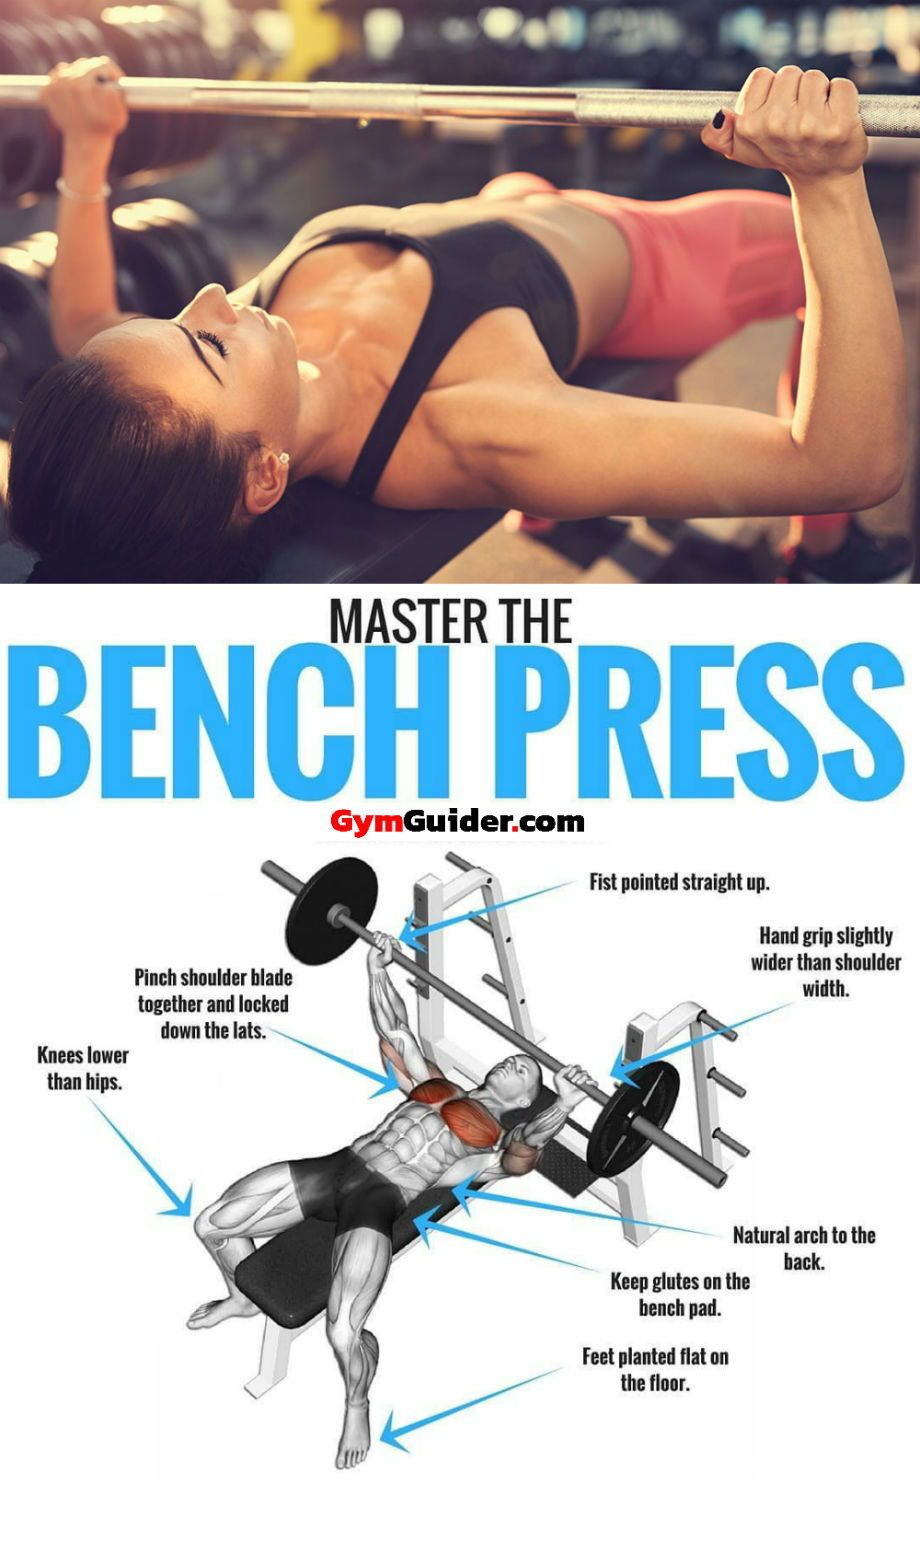 6 Technique Points To Increase Bench Press Weight Gymguider Com Bench Press Bench Press Workout Bench Press Weights